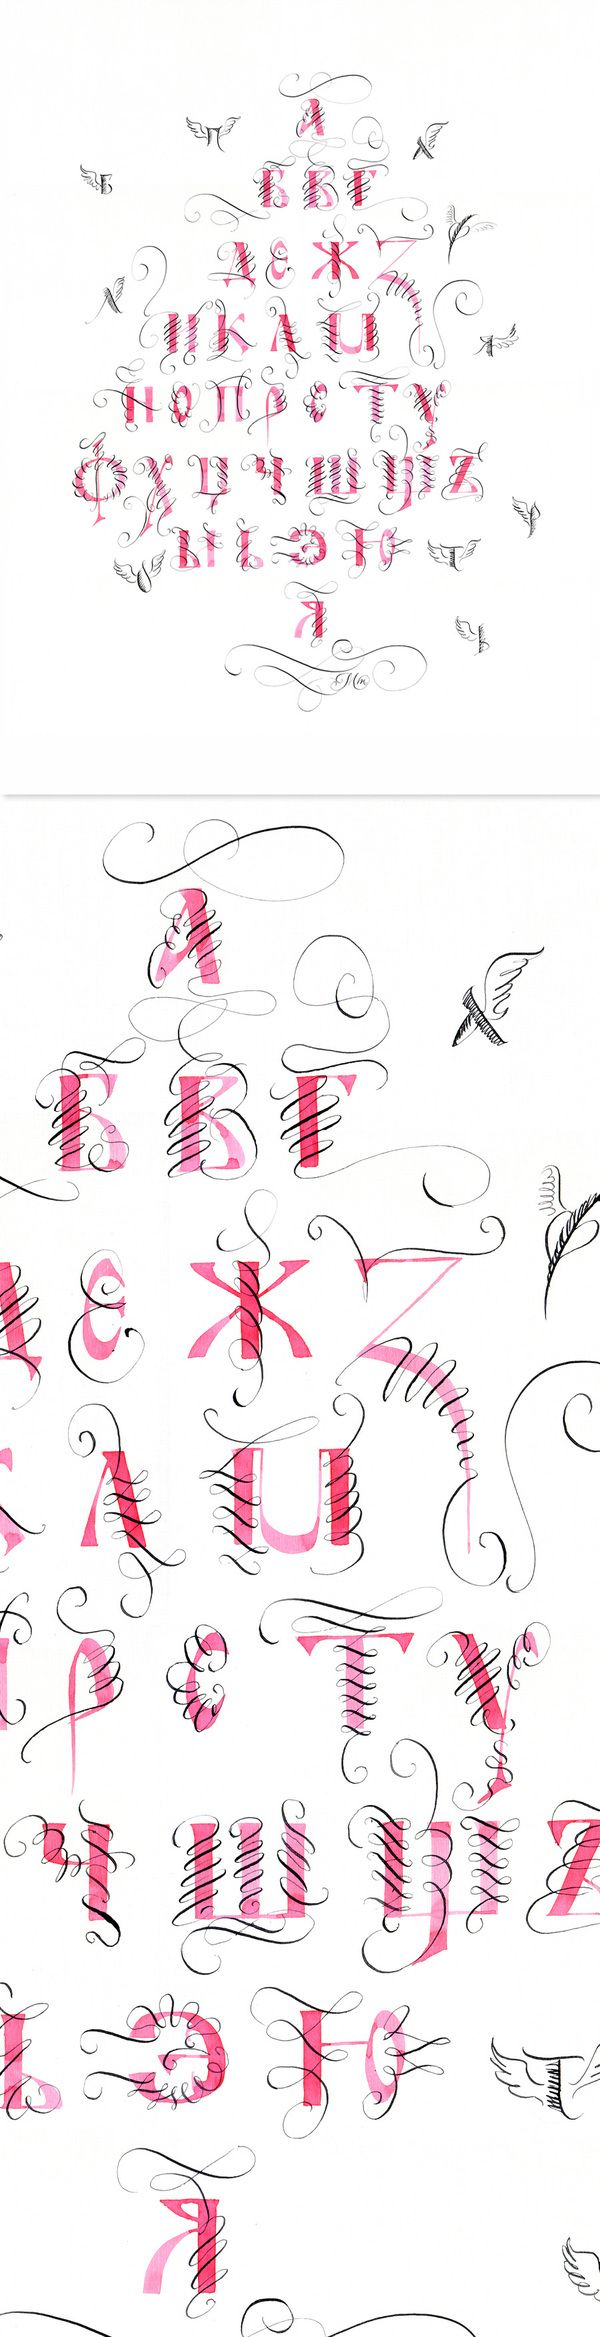 Artworks for calligraphy & typography festivals. by Marina Marjina